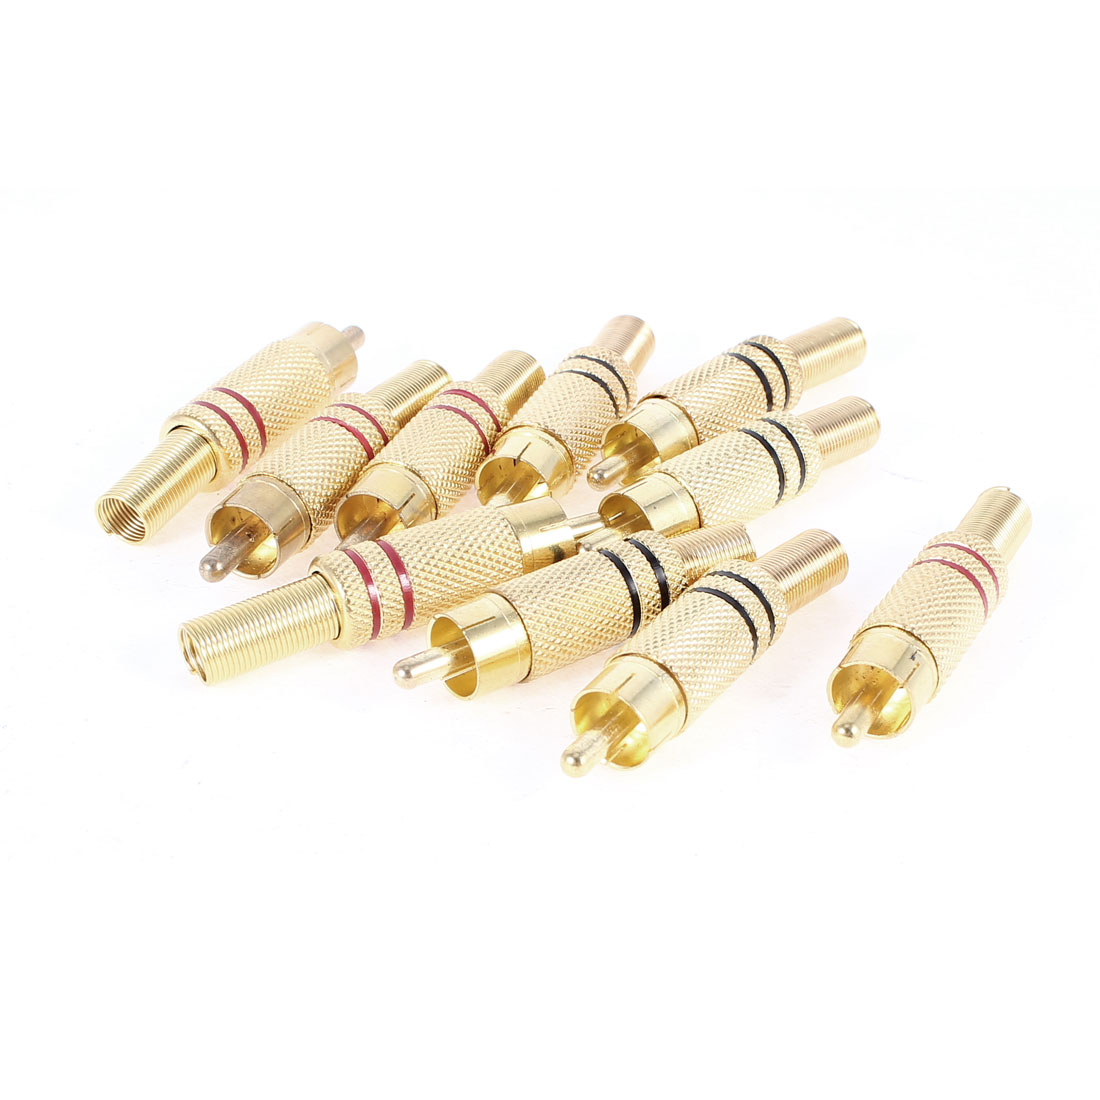 Unique Bargains 10 Pieces Gold Tone Red Black Metal Spring Head Male RCA Plug Connectors Adapter